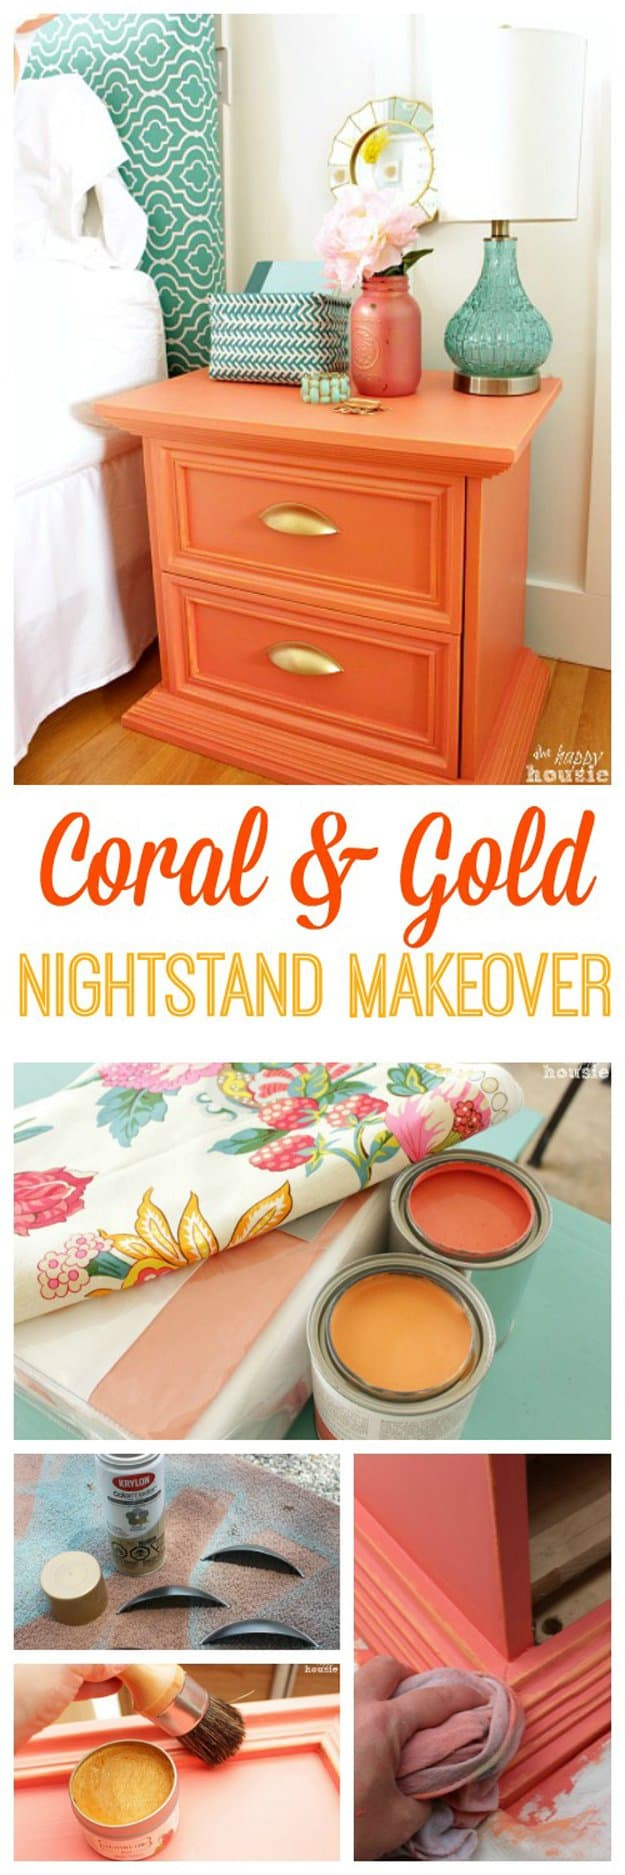 25. NESTLE A CORAL AND GOLD NIGHTSTAND IN YOUR DECOR